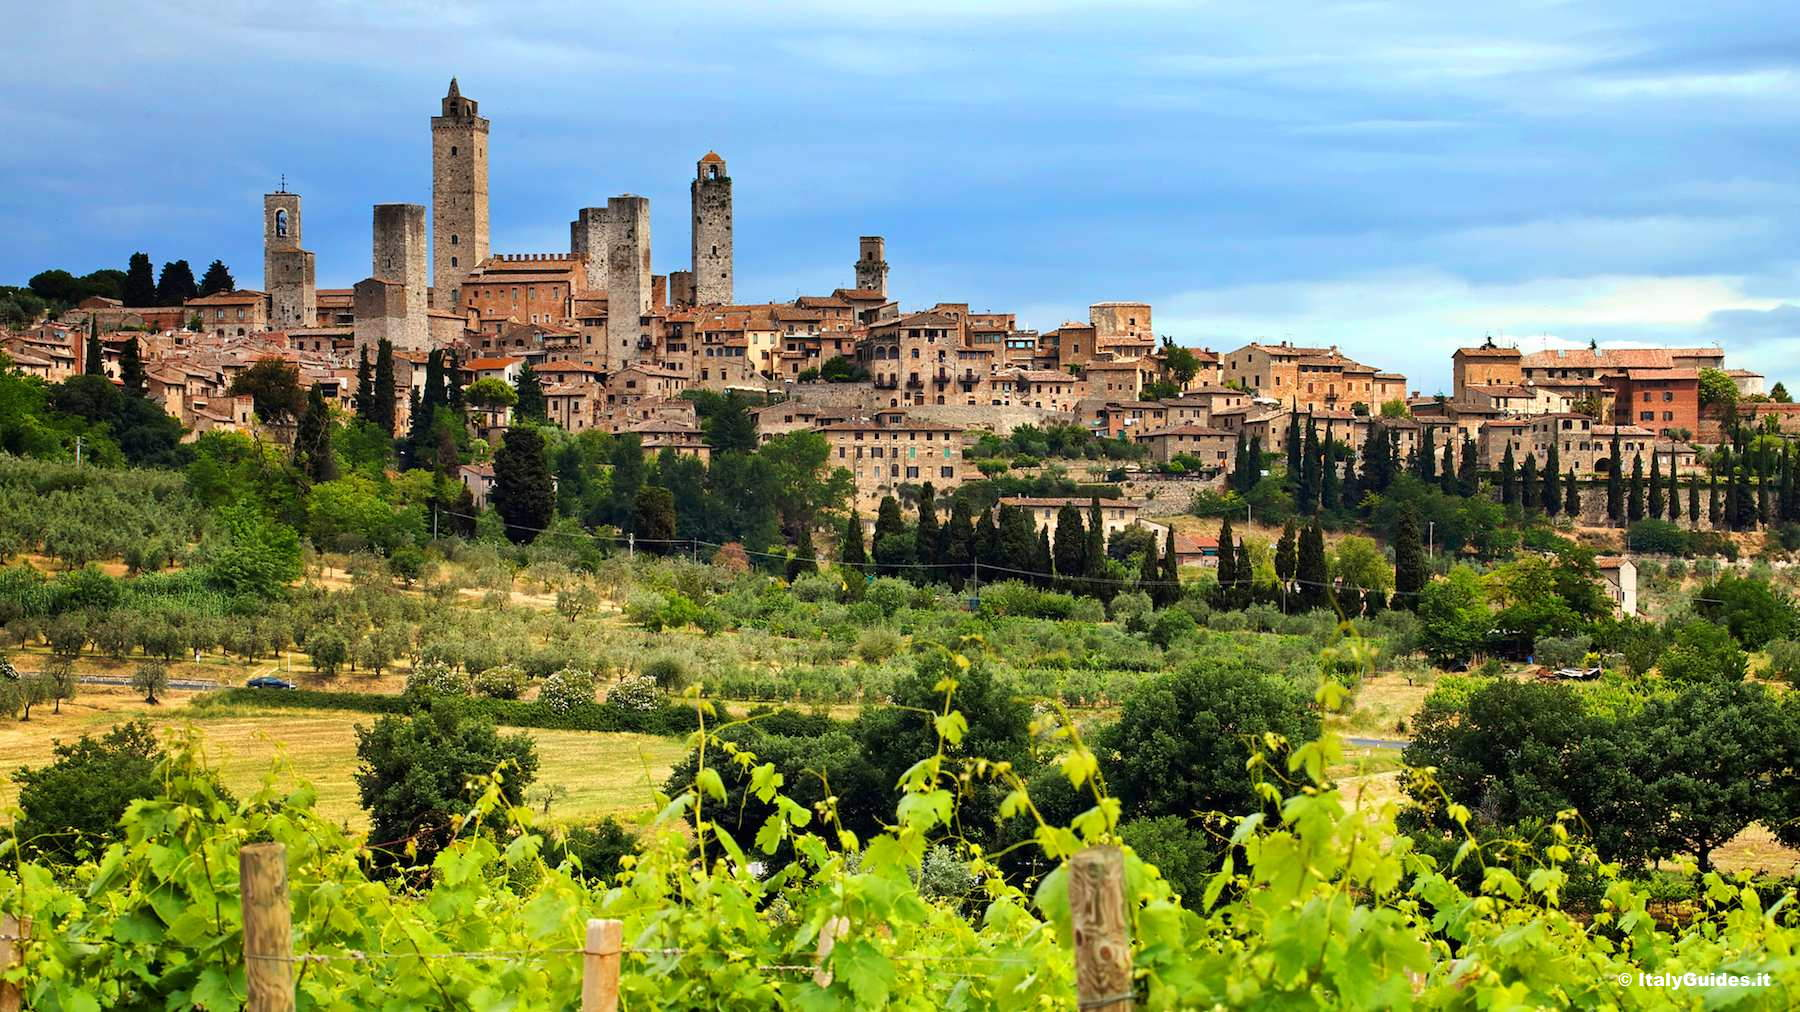 Pictures of San Gimignano, photo gallery and movies of San Gimignano ...